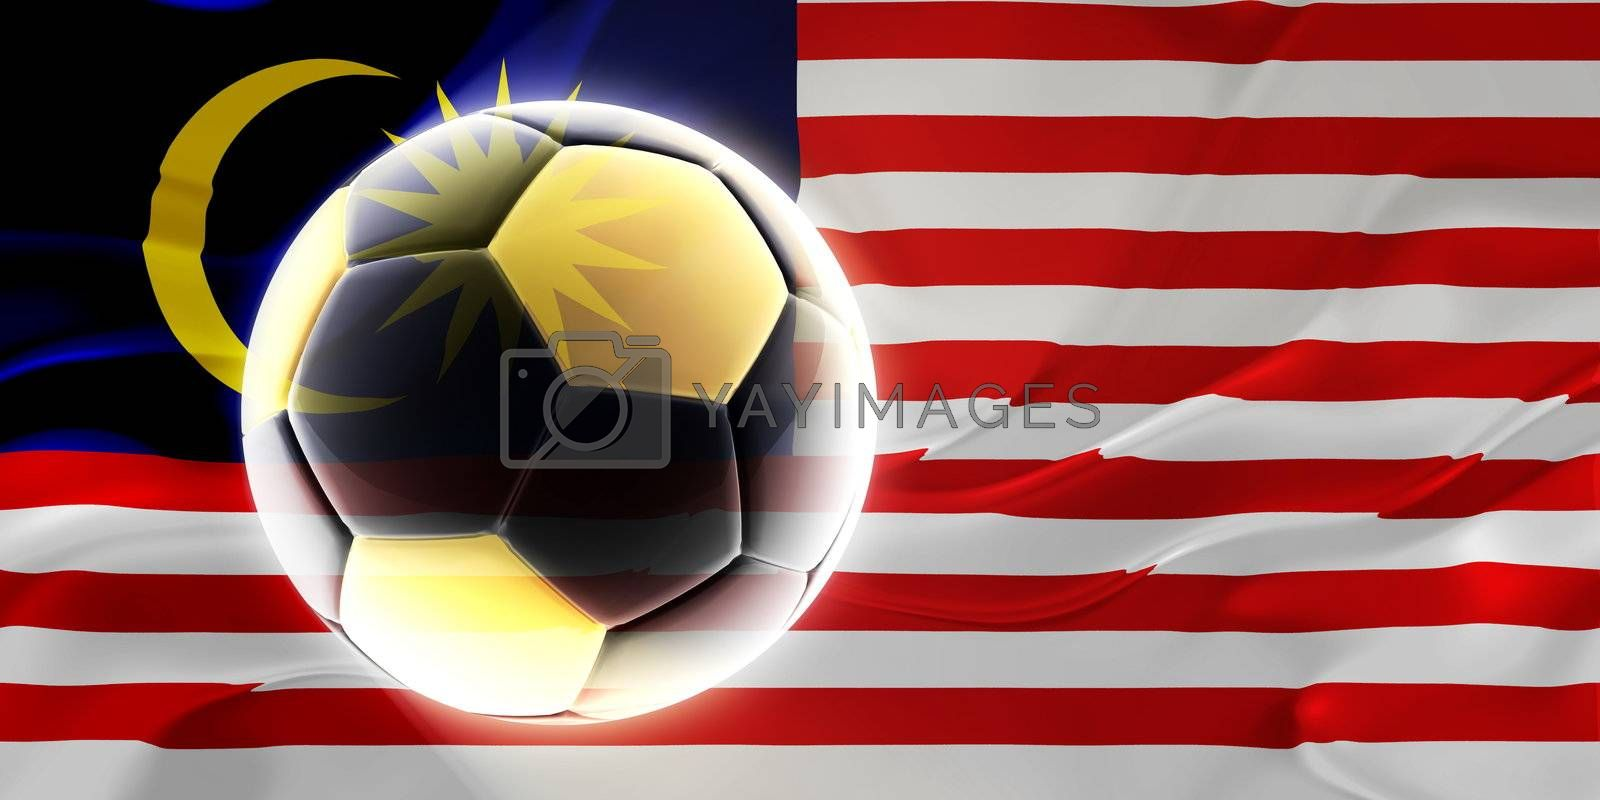 Flag of Malaysia, national country symbol illustration wavy fabric sports soccer football